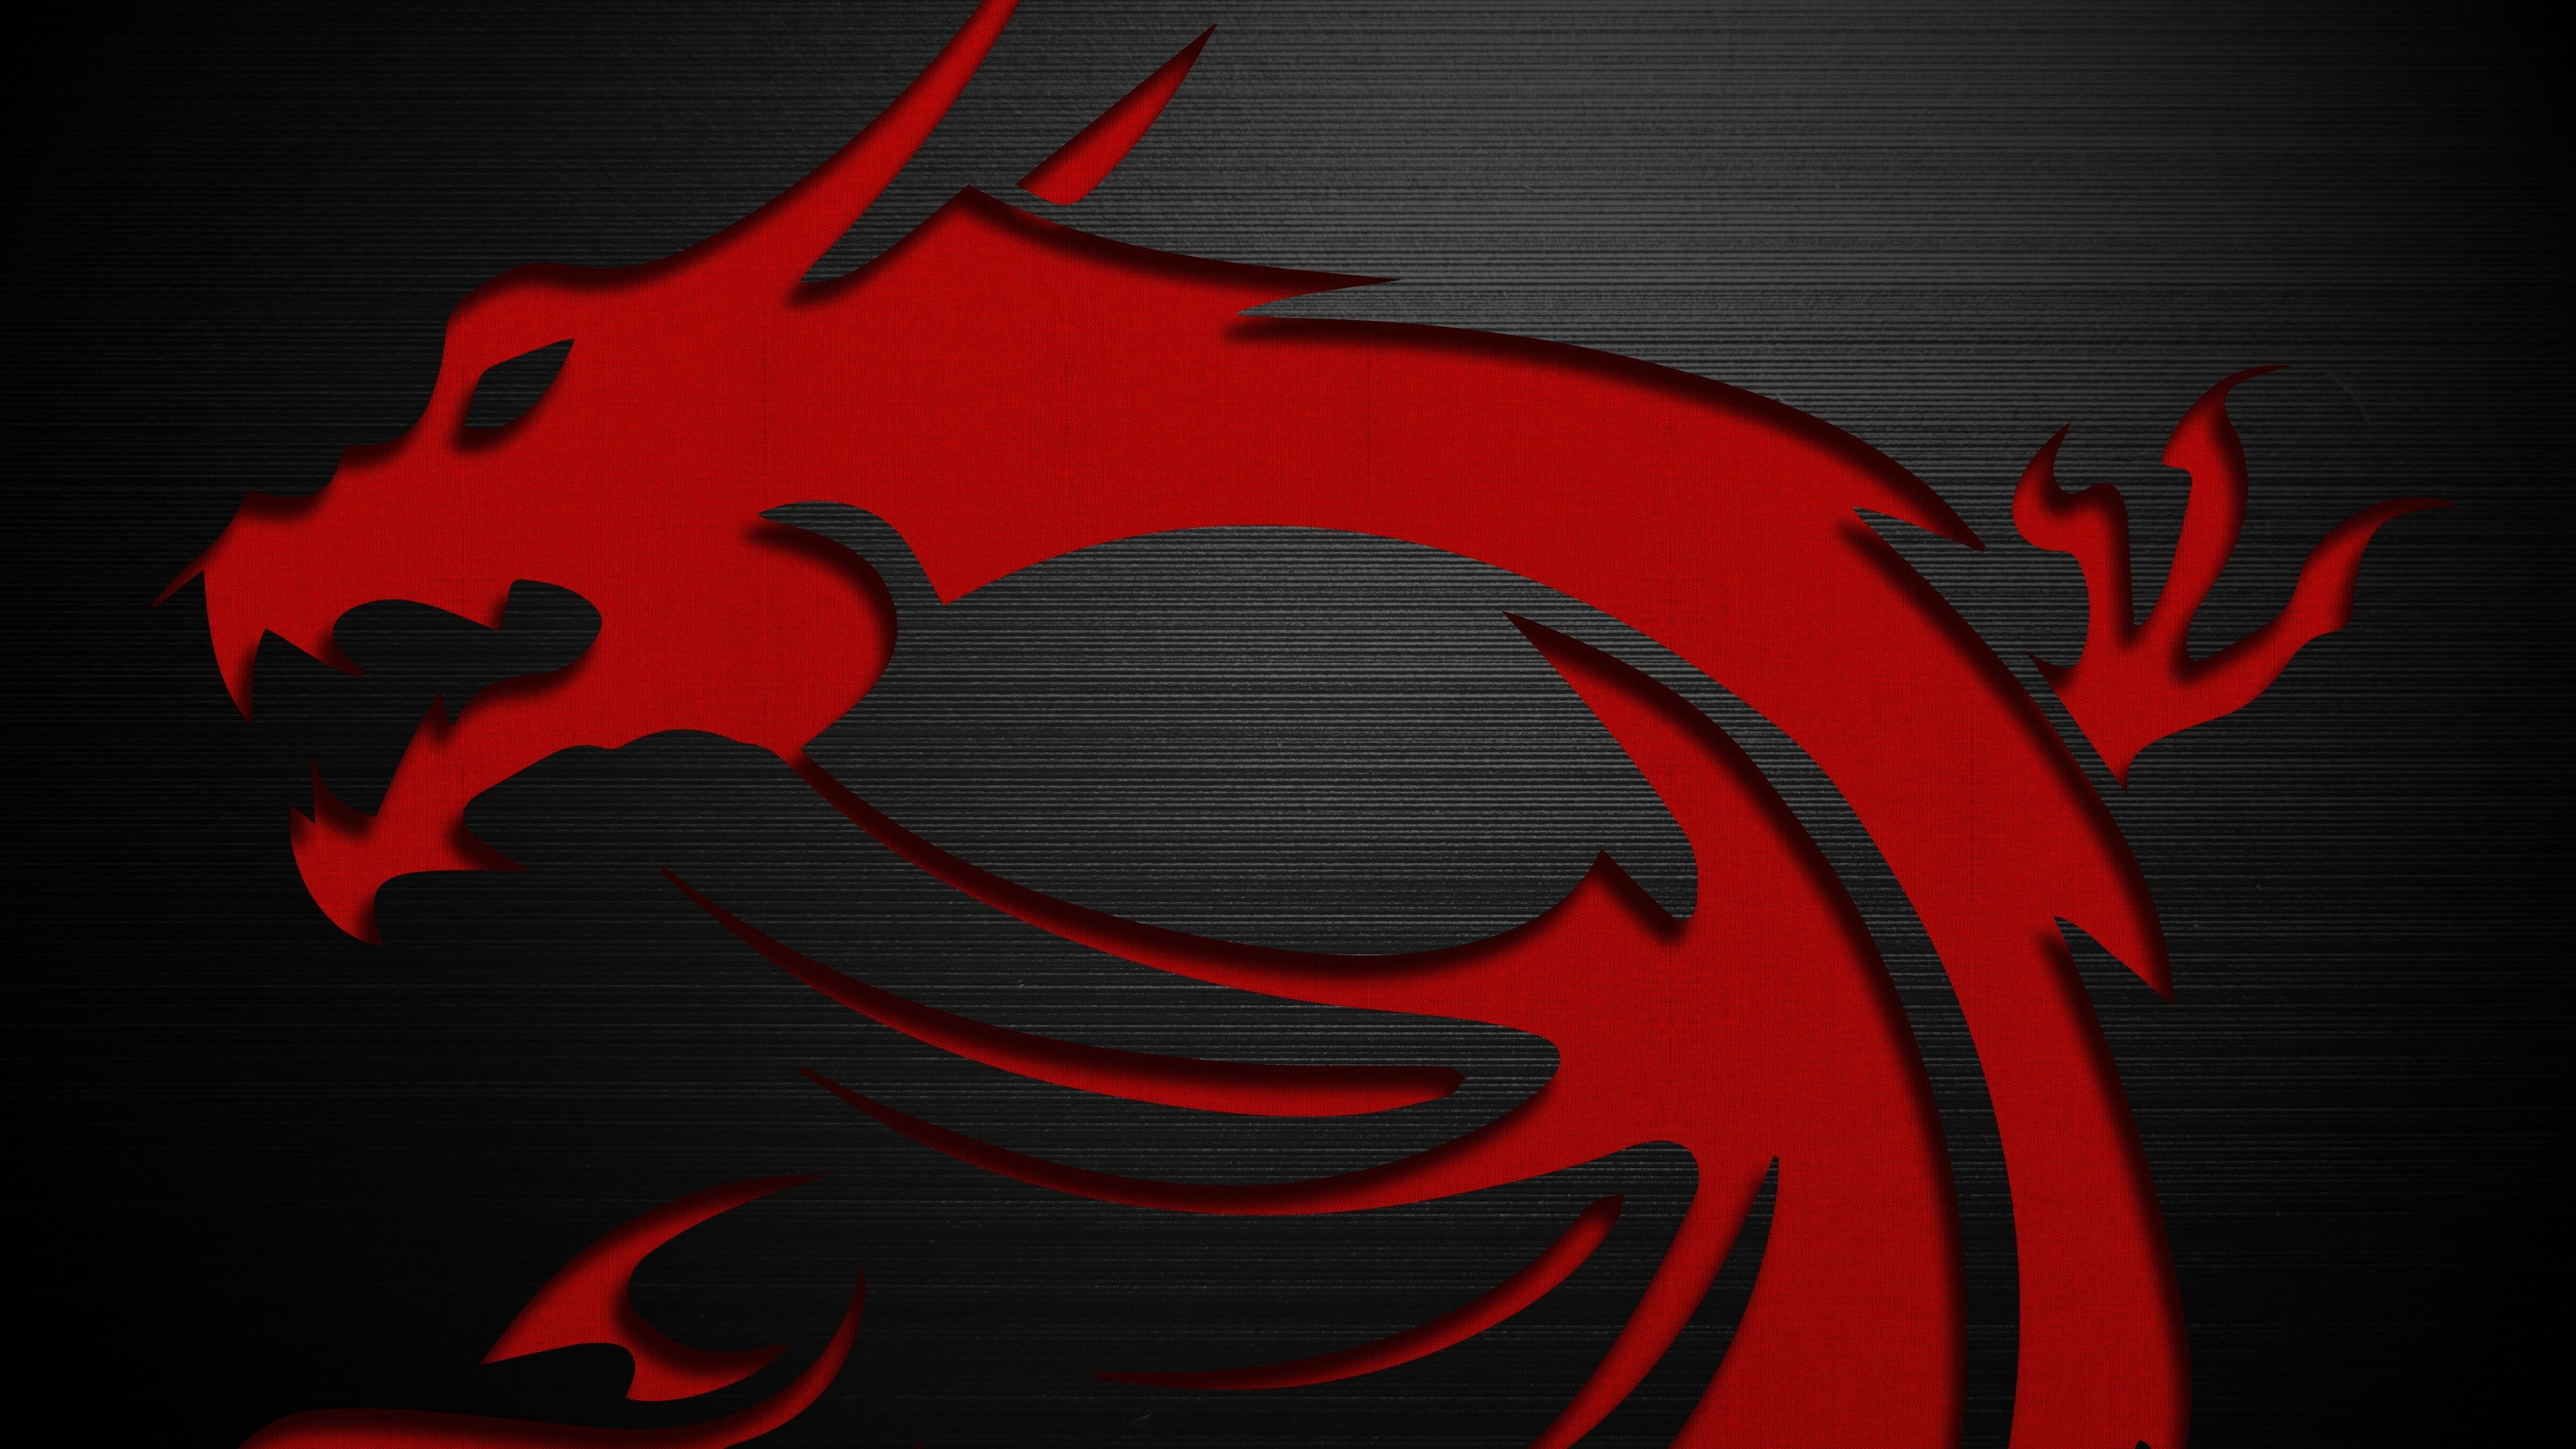 Dragon Hardware Logo Msi Pc Gaming Technology Texture 4k Wallpaper Hdwallpaper Desktop In 2020 Msi Graphic Card Wallpaper